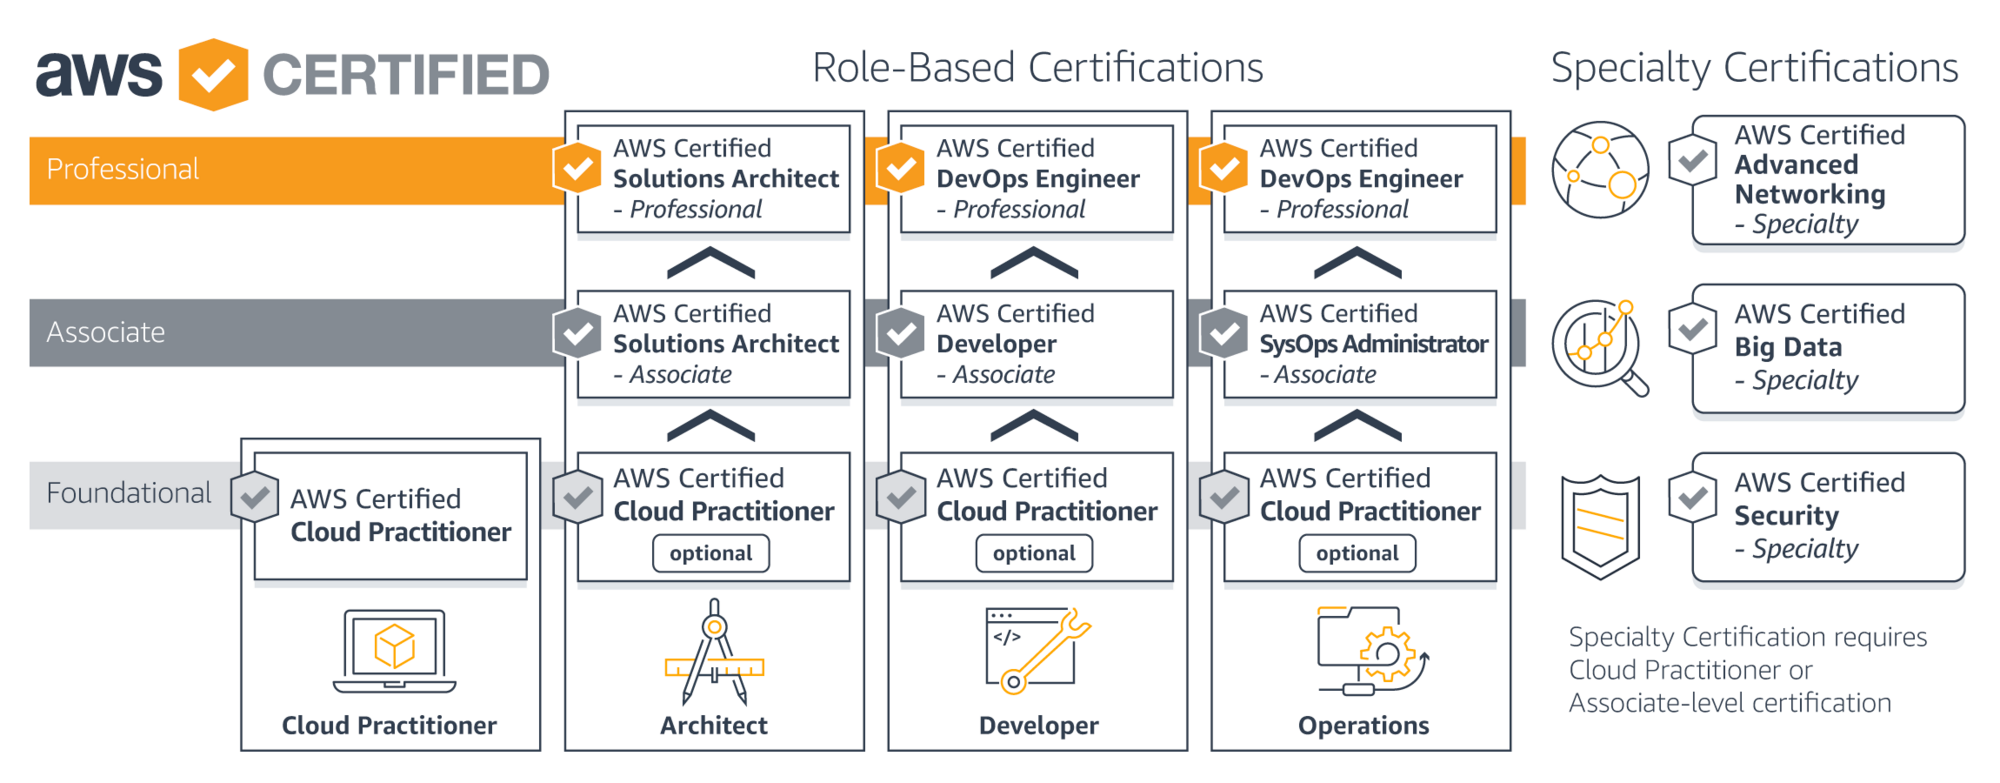 How to prepare and pass AWS Certified Cloud Practitioner